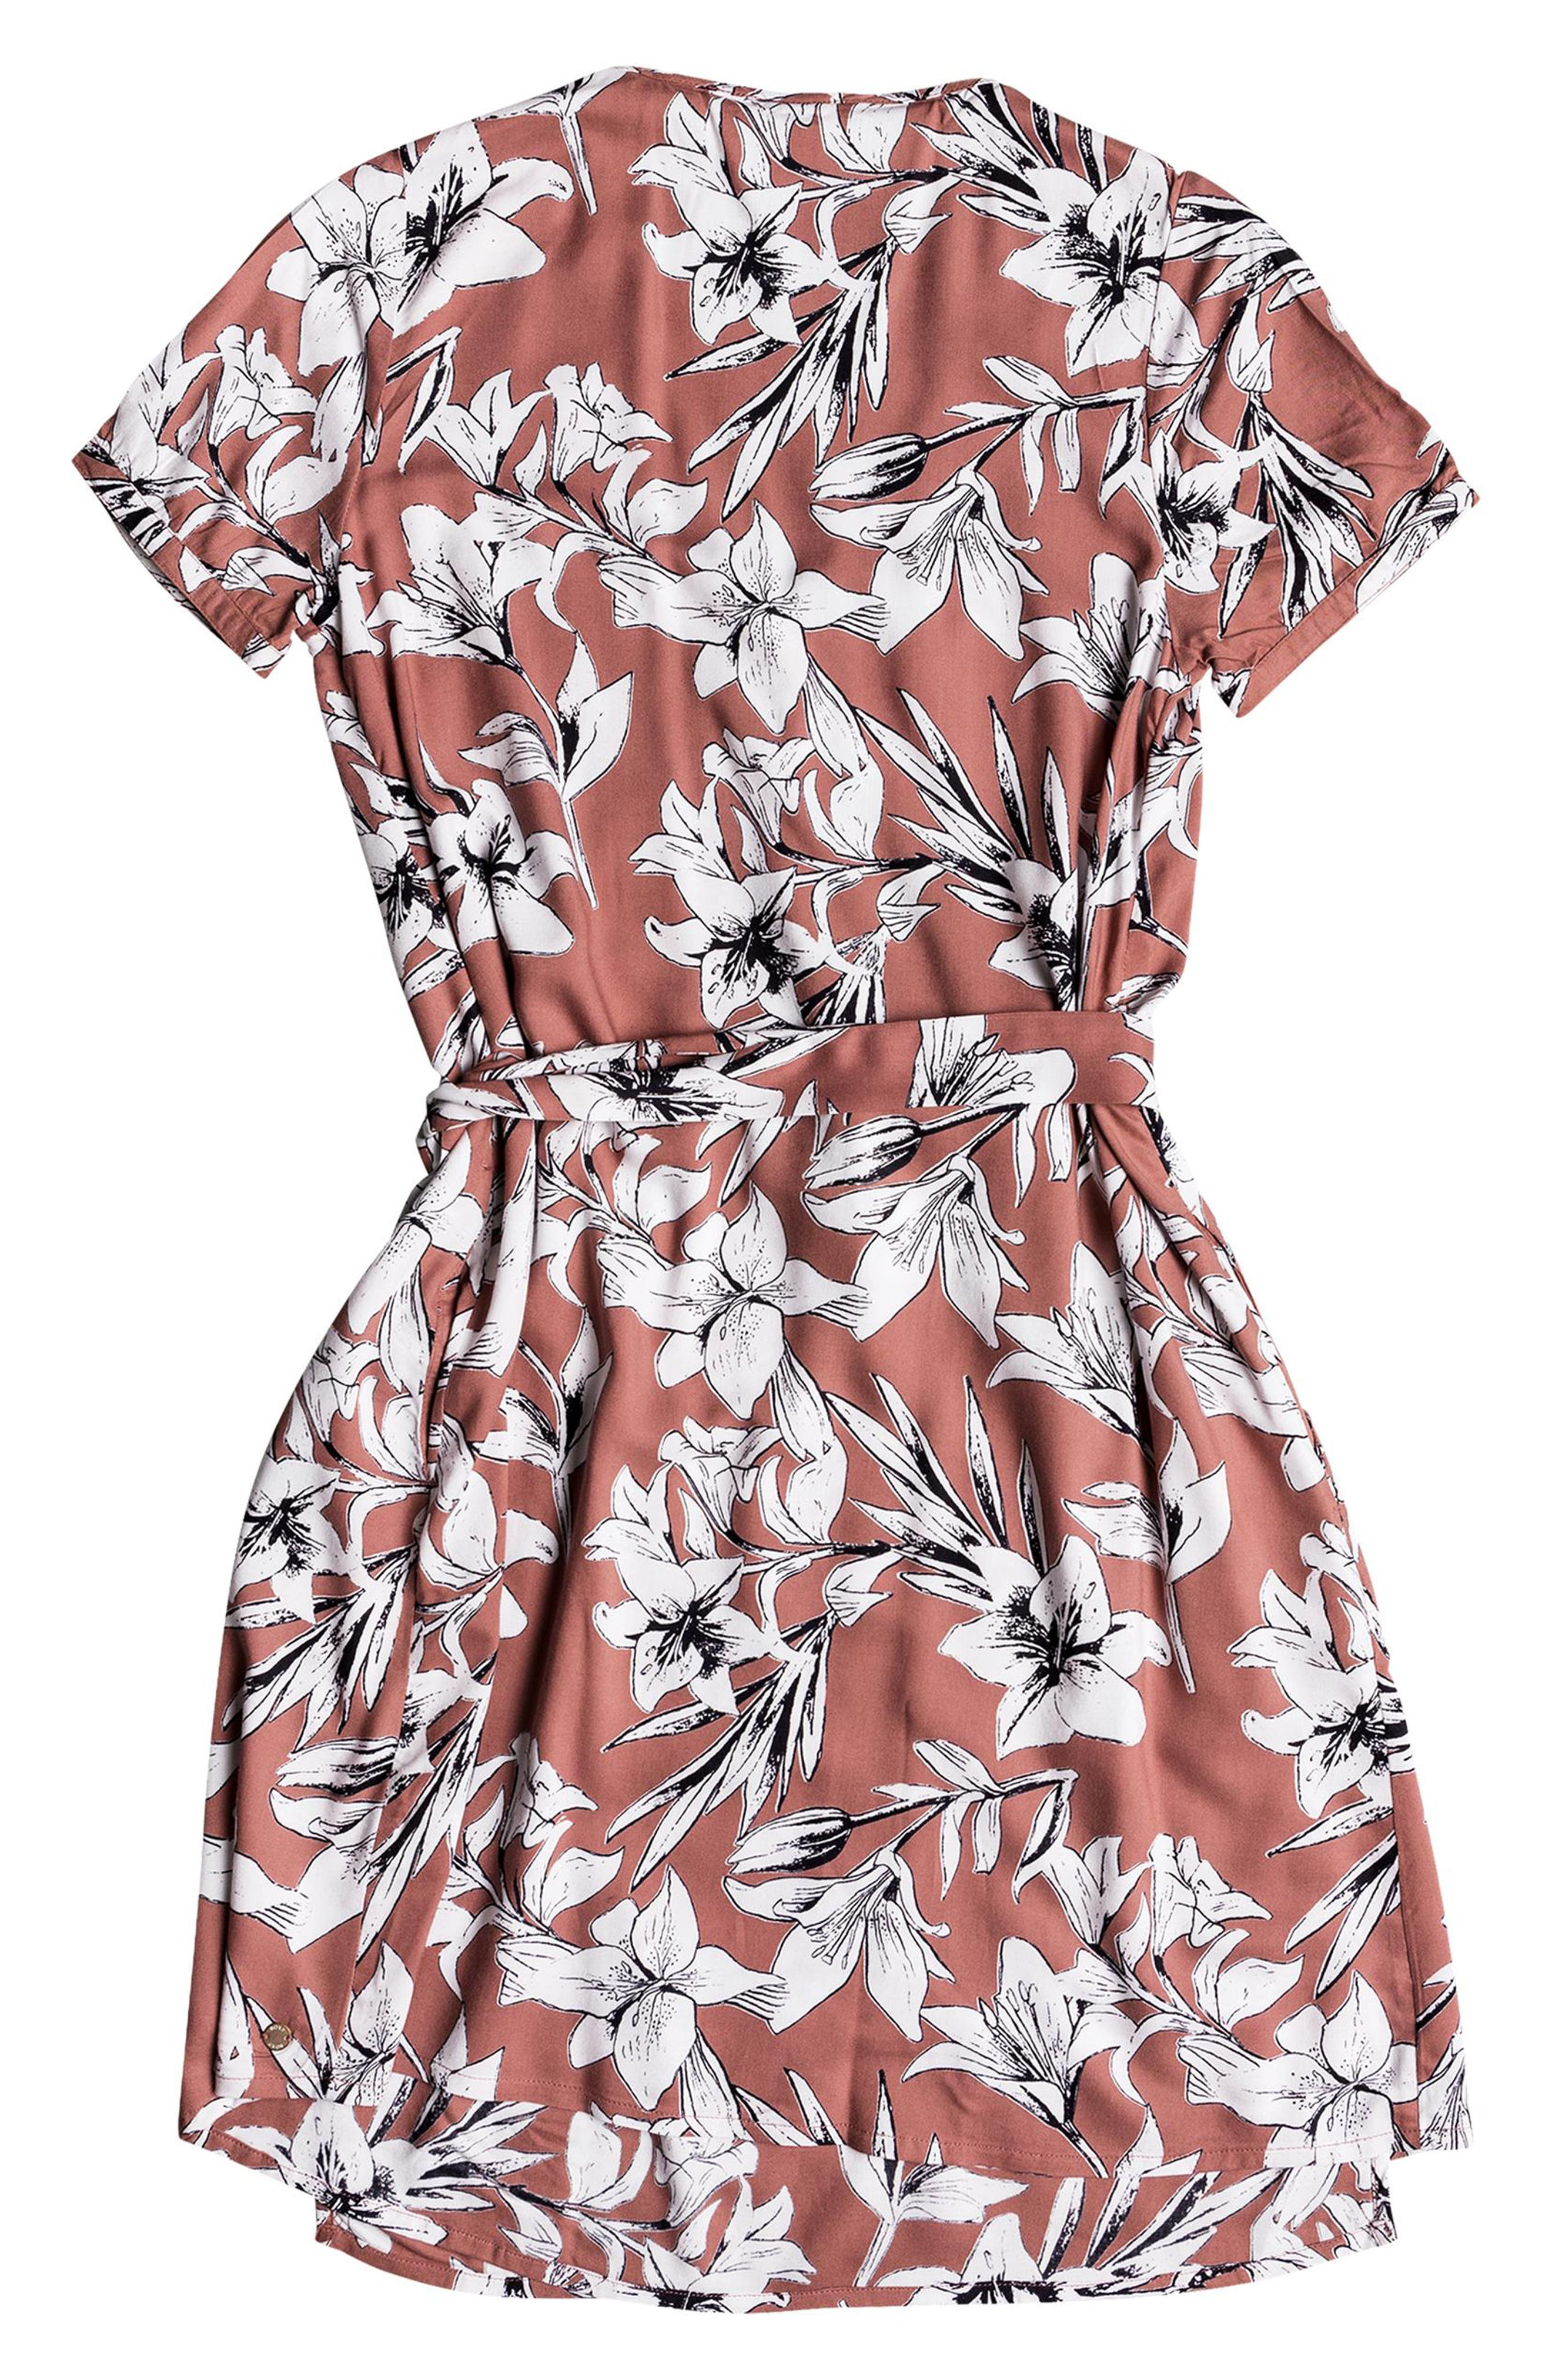 Monument View Floral Print Wrap Dress,                             Alternate thumbnail 6, color,                             WITHERED ROSE LILY HOUSE